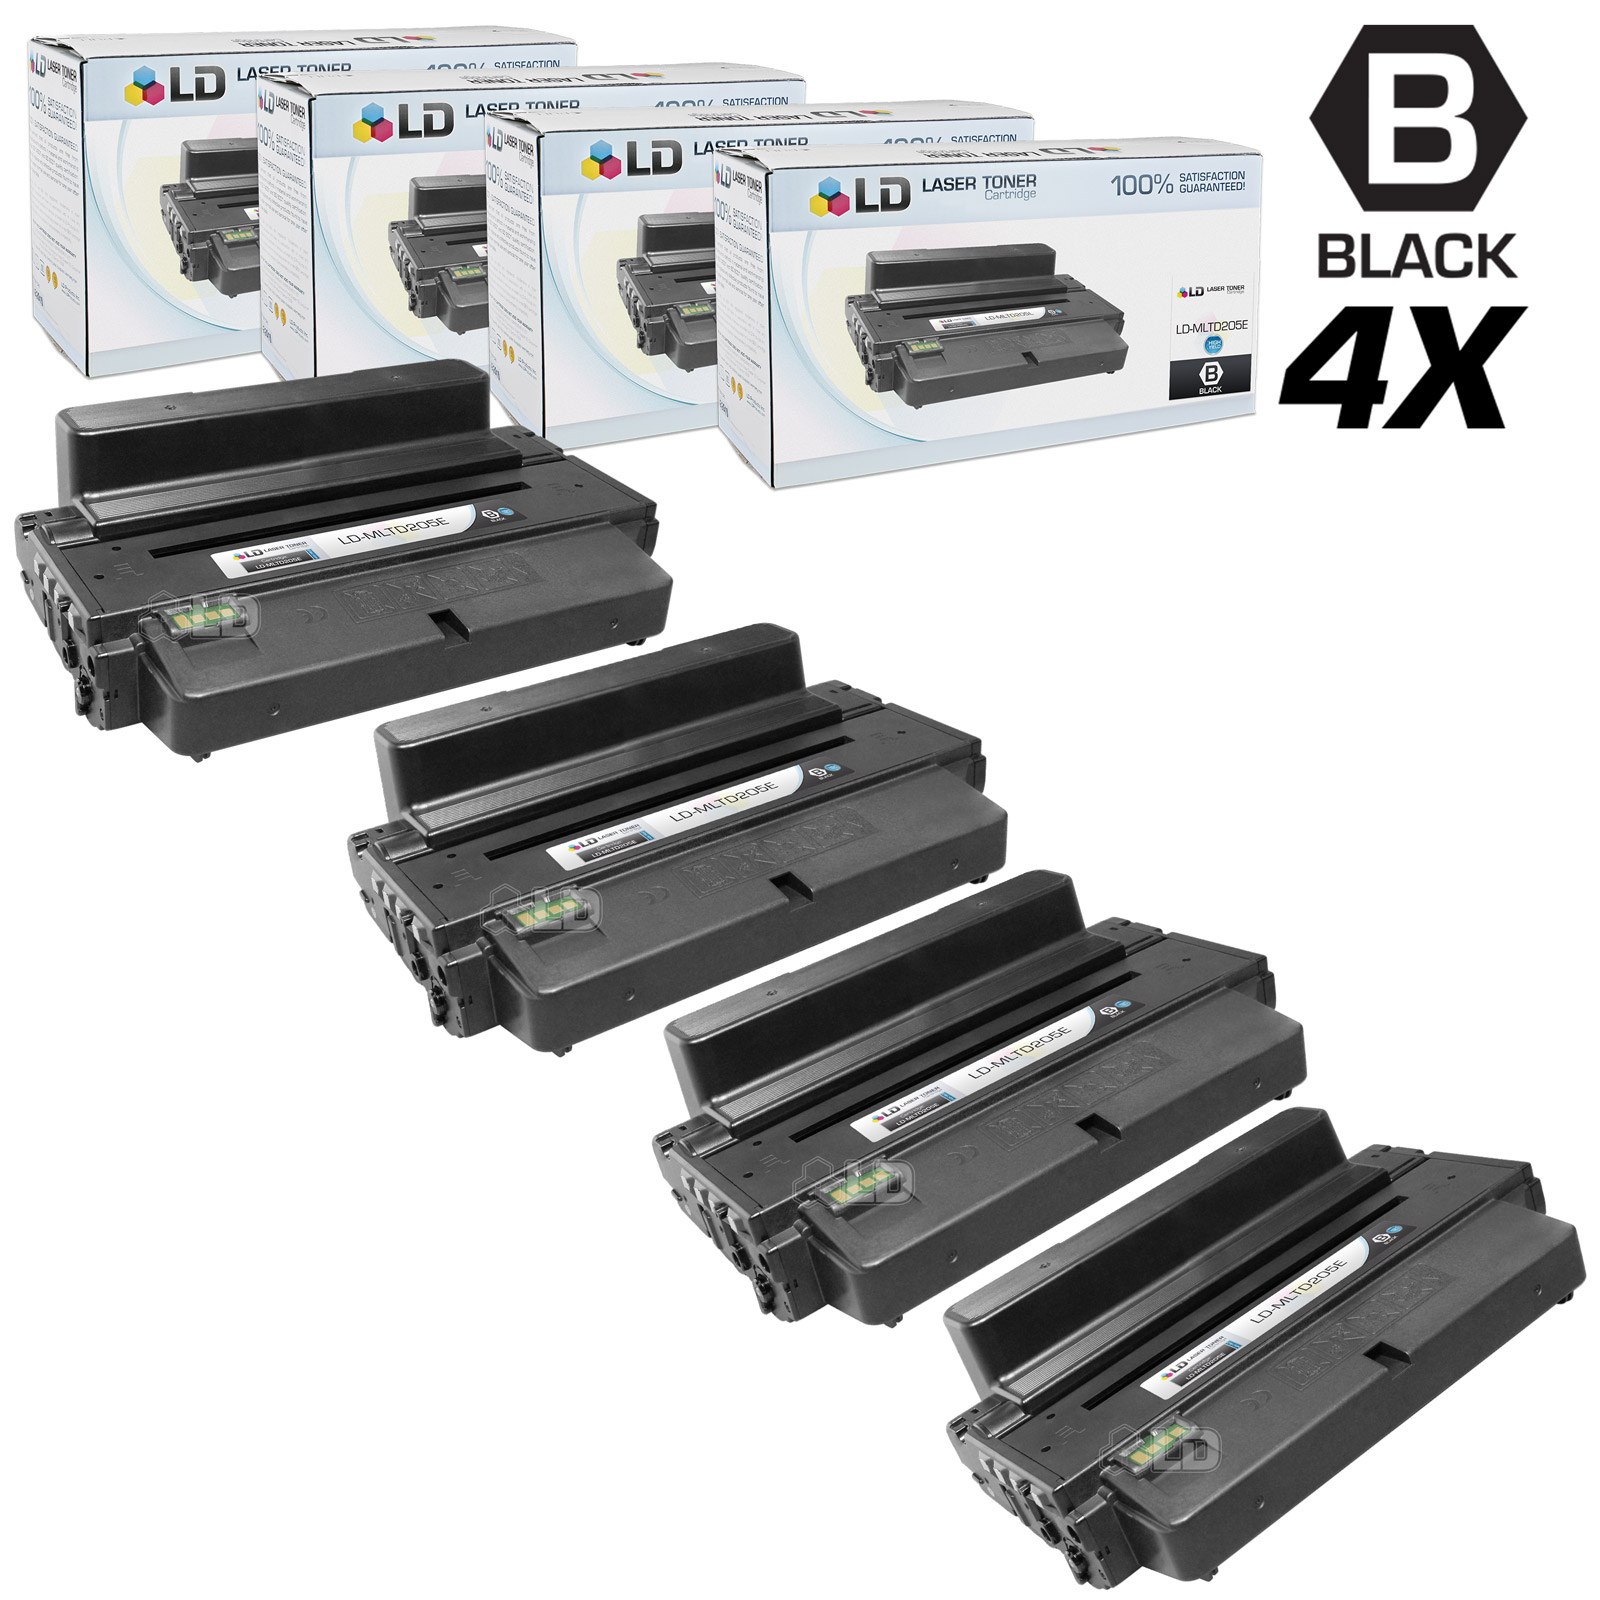 LD Black Cartridges for the Samsung MLT-D205E for the ML-3712 Printers for ML-3712, ML-3712ND. ML-5639FR and ML-5739FW